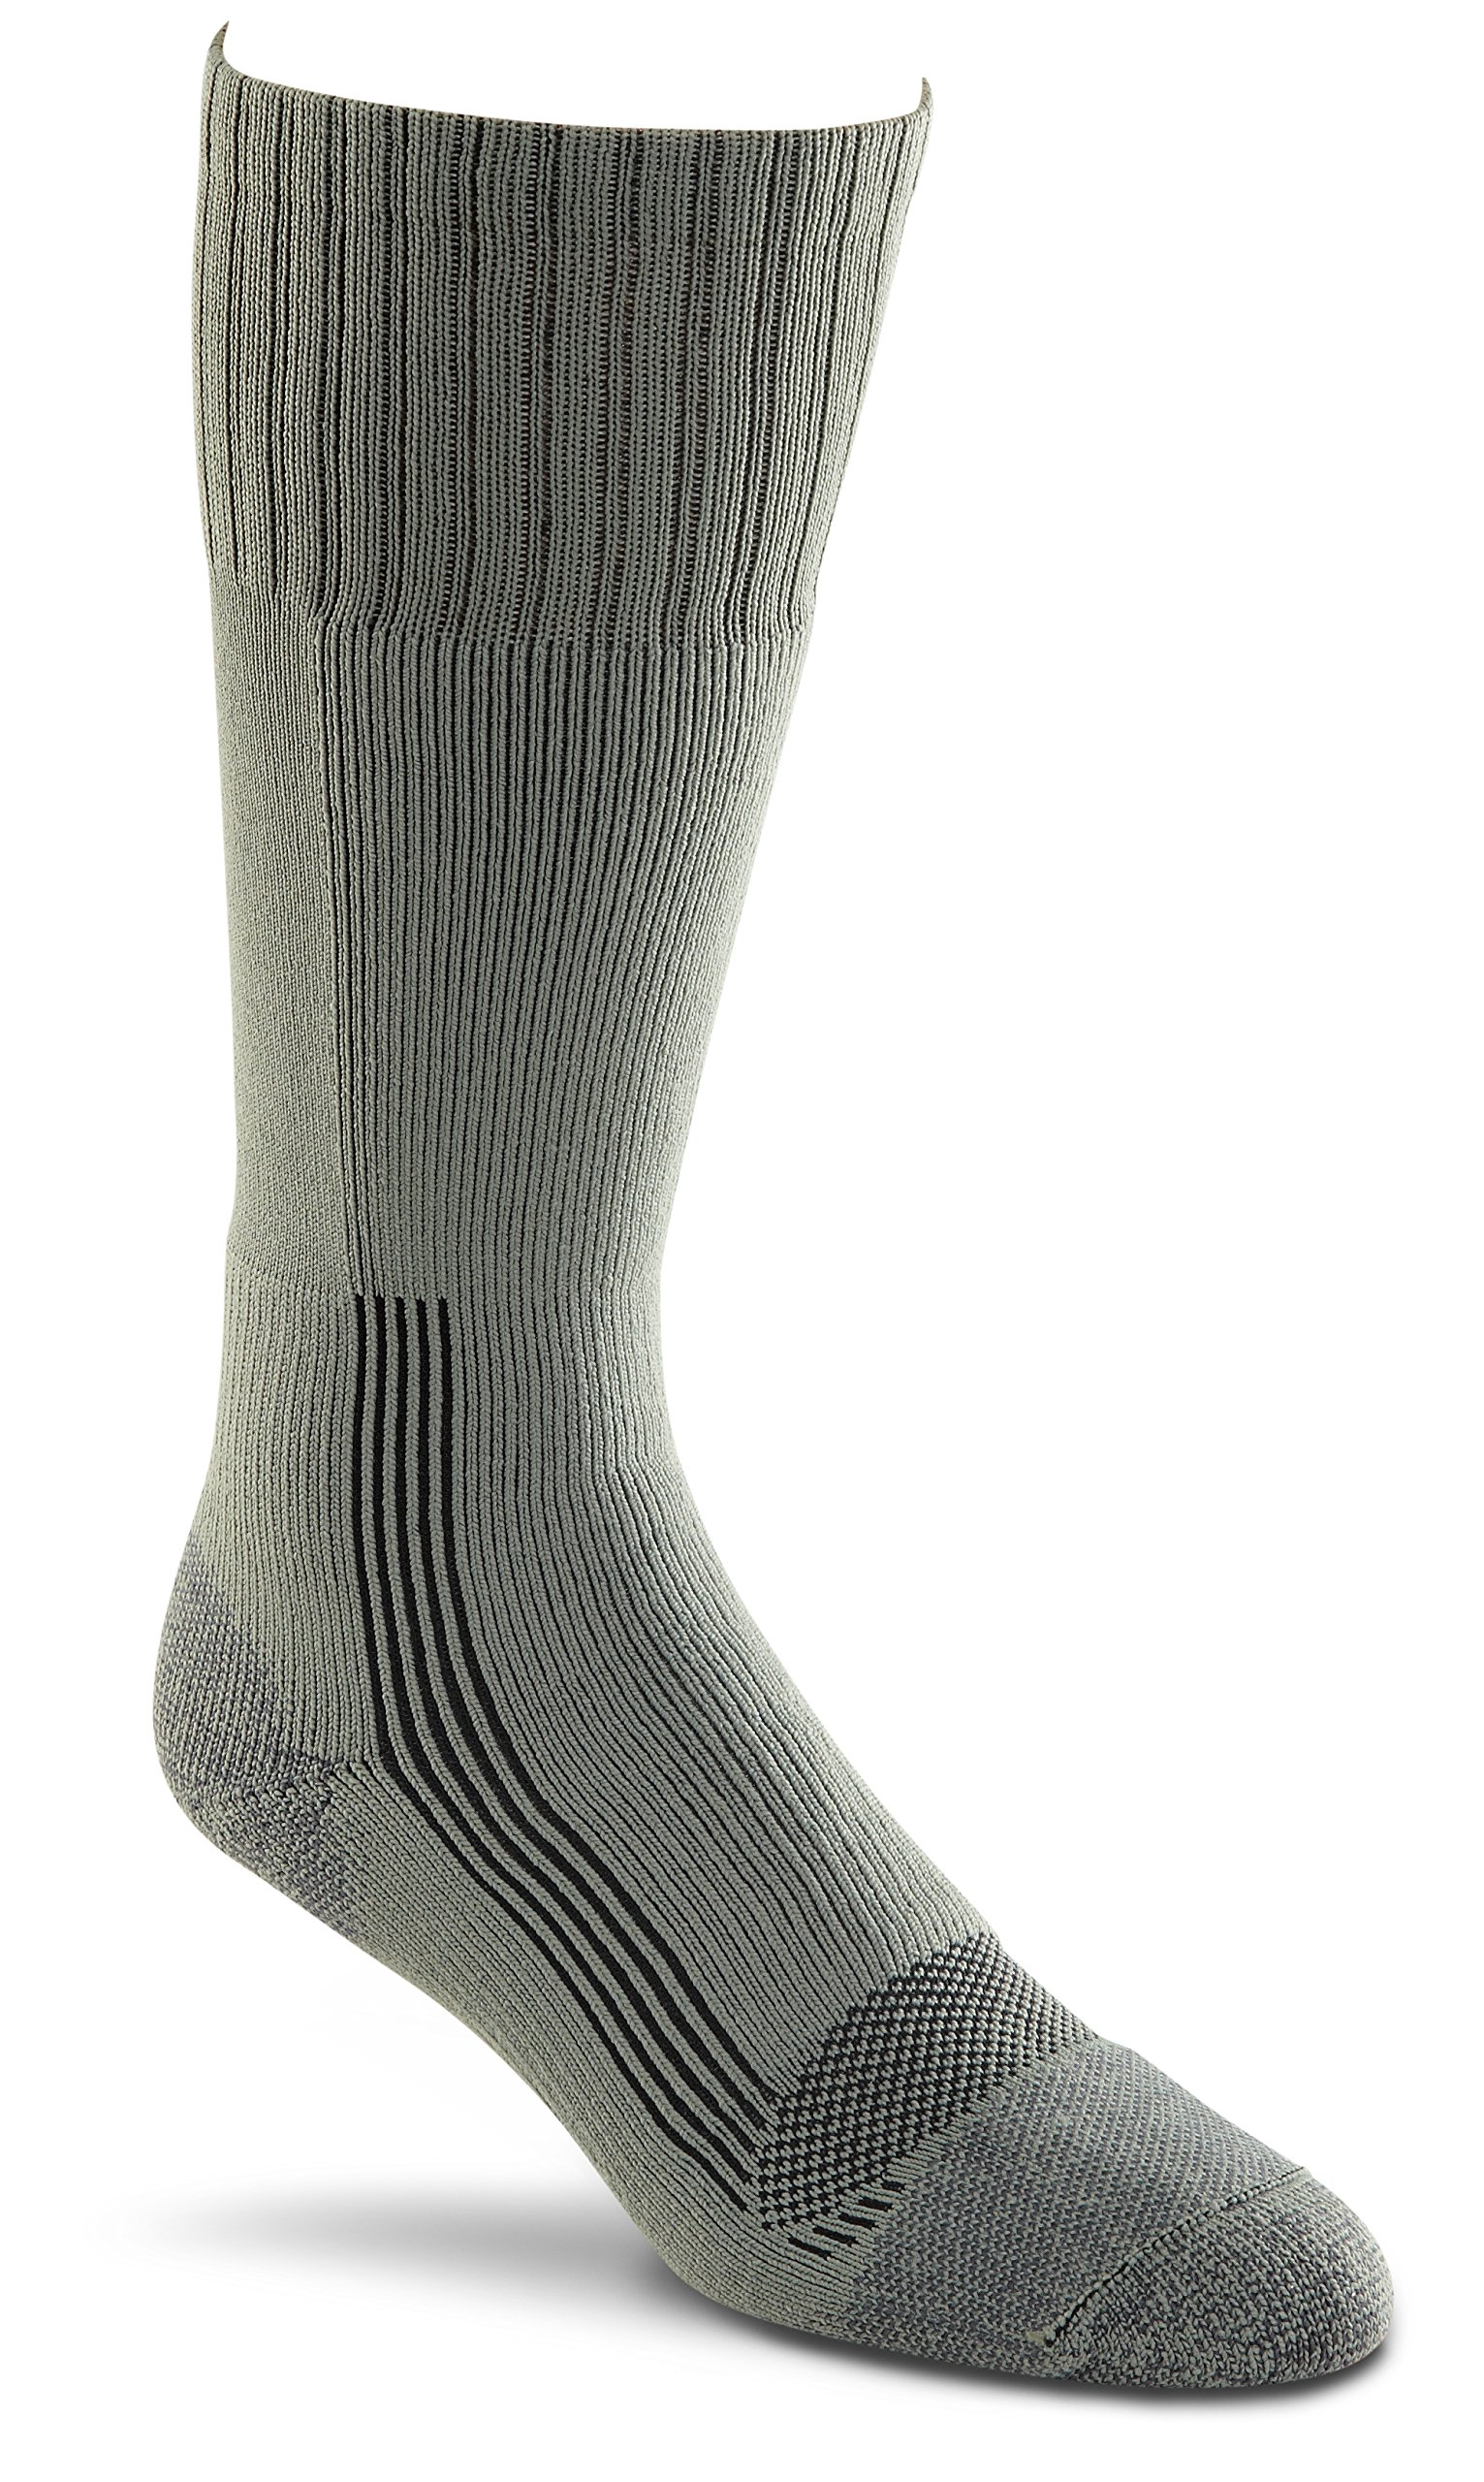 Fox River Adult Wick Dry Maximum Mid-Calf Boot Sock - Small - Foliage Green (Pack of 2) by FoxRiver